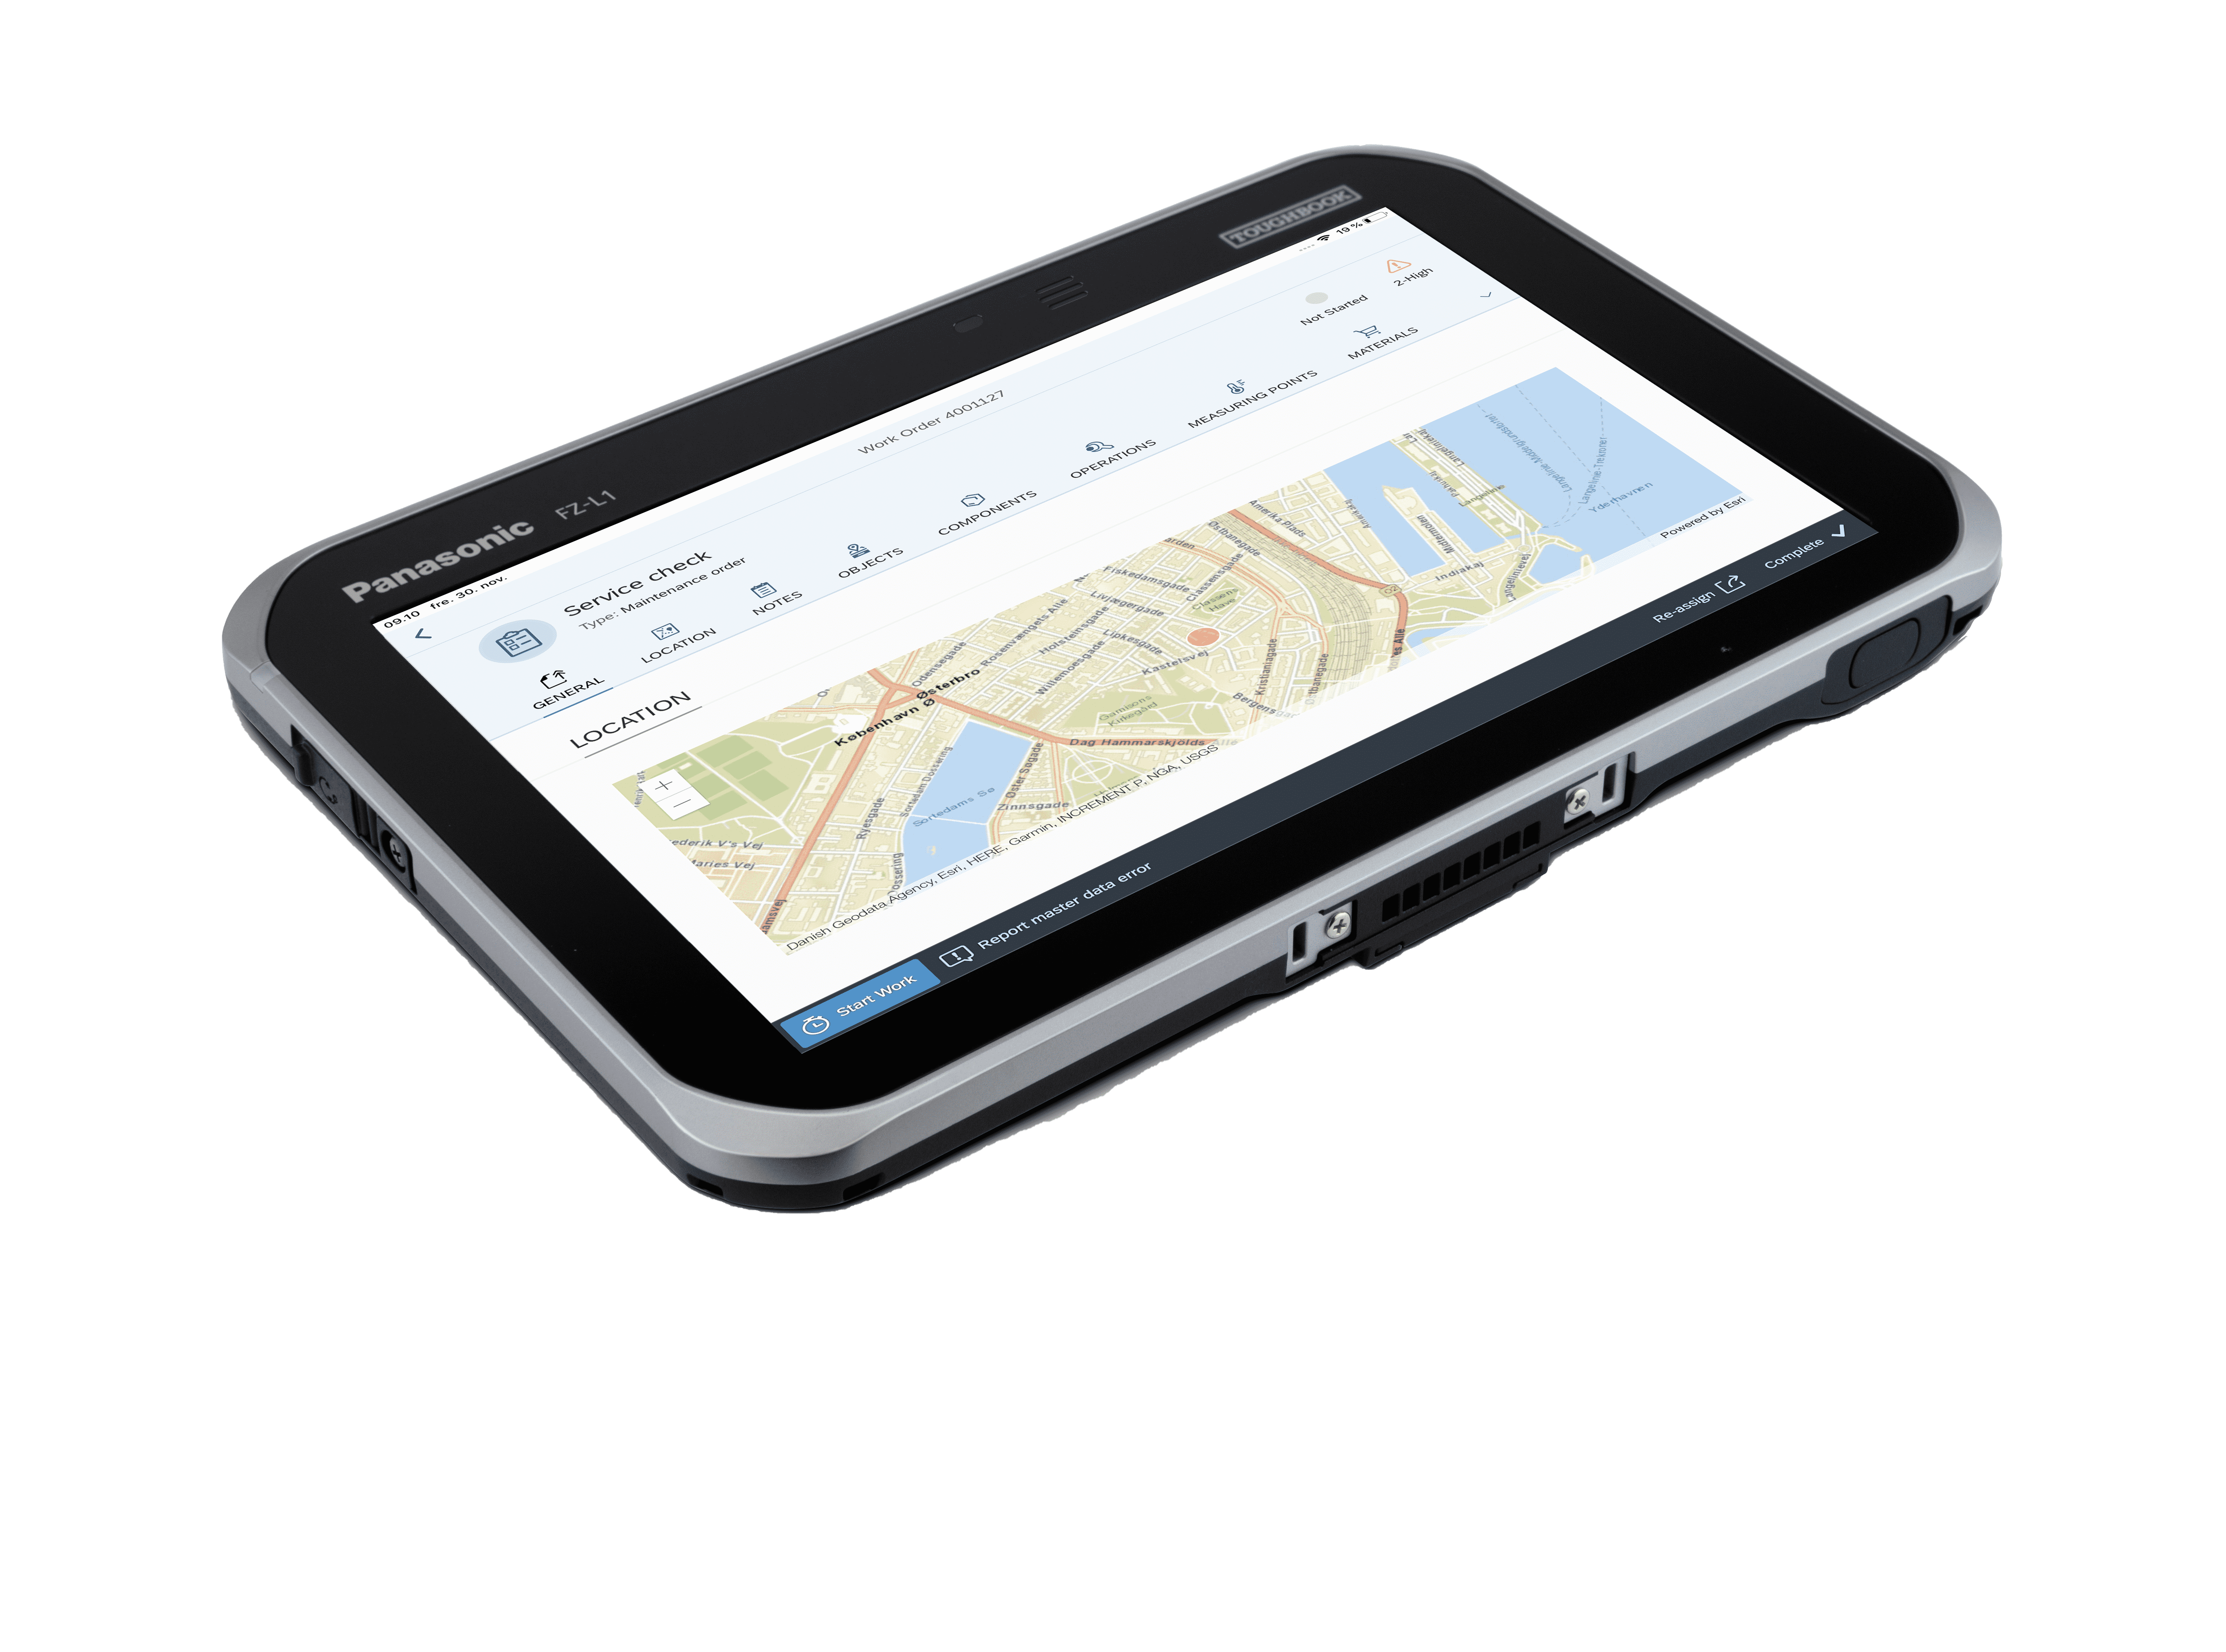 SAP-mobile-work-order-service-check-screen-view-on-Panasonic-Toughbook-FZ-L1-tablet